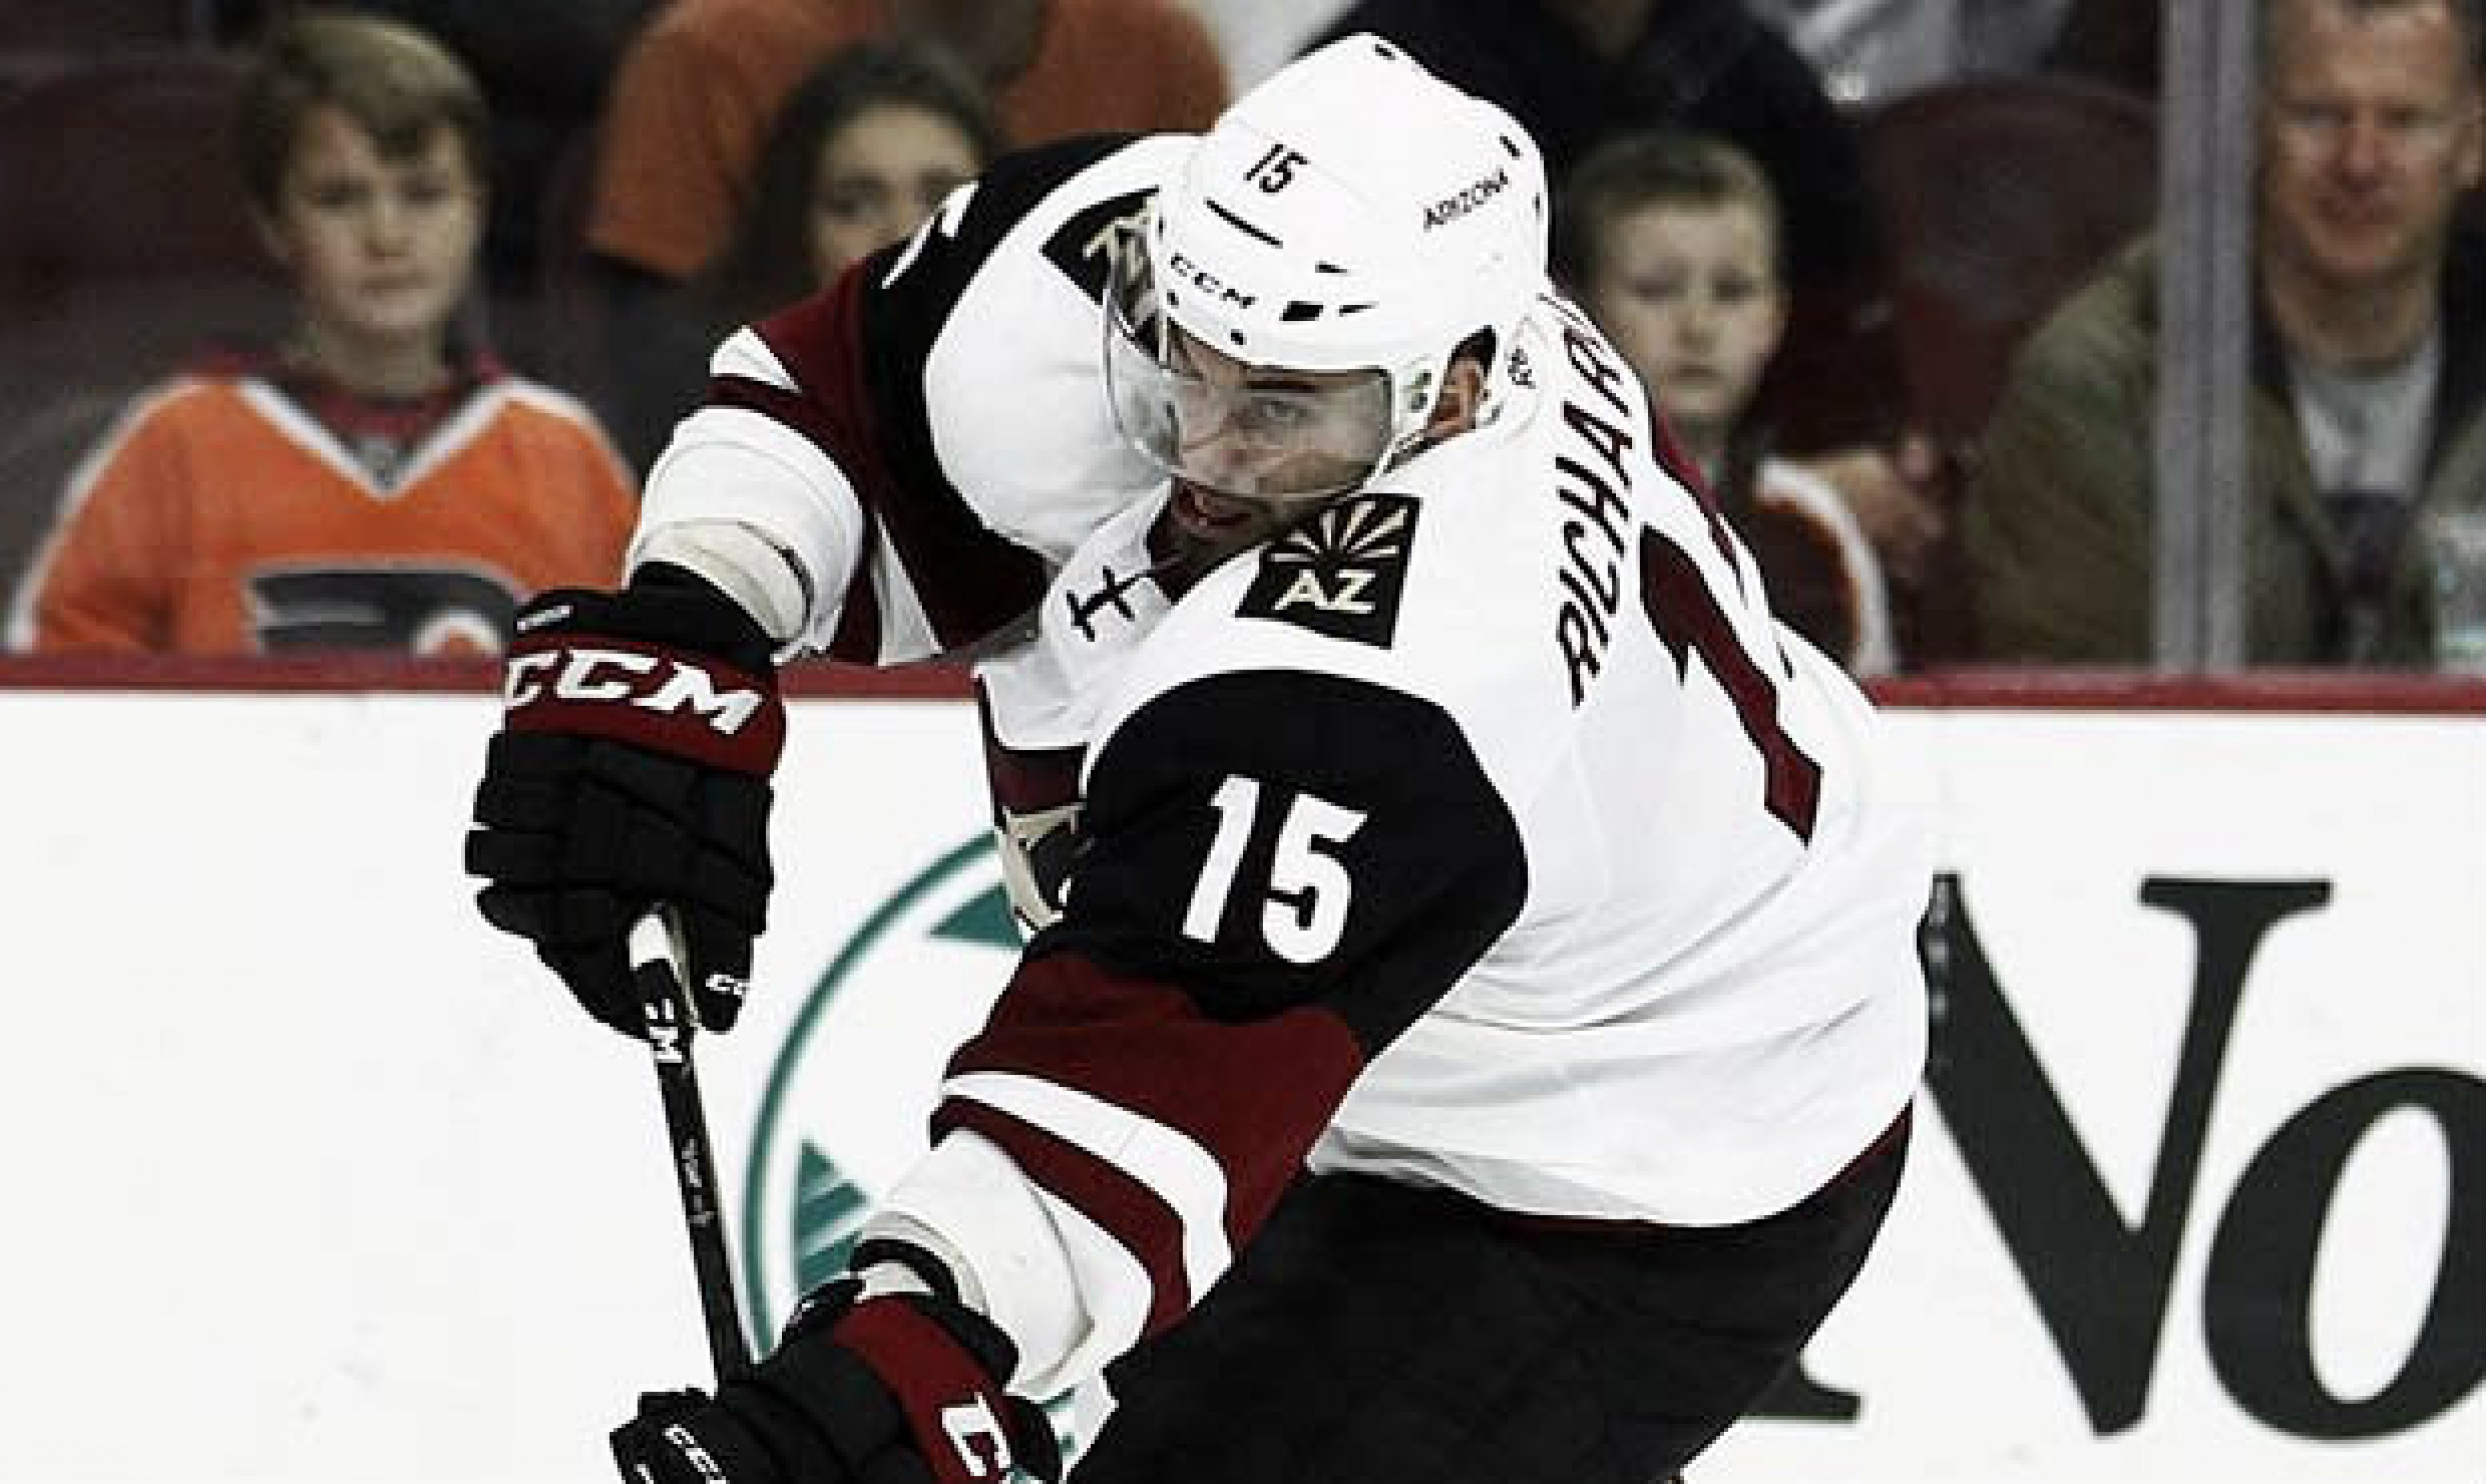 Arizona Coyotes: Brad Richardson back as strong as ever